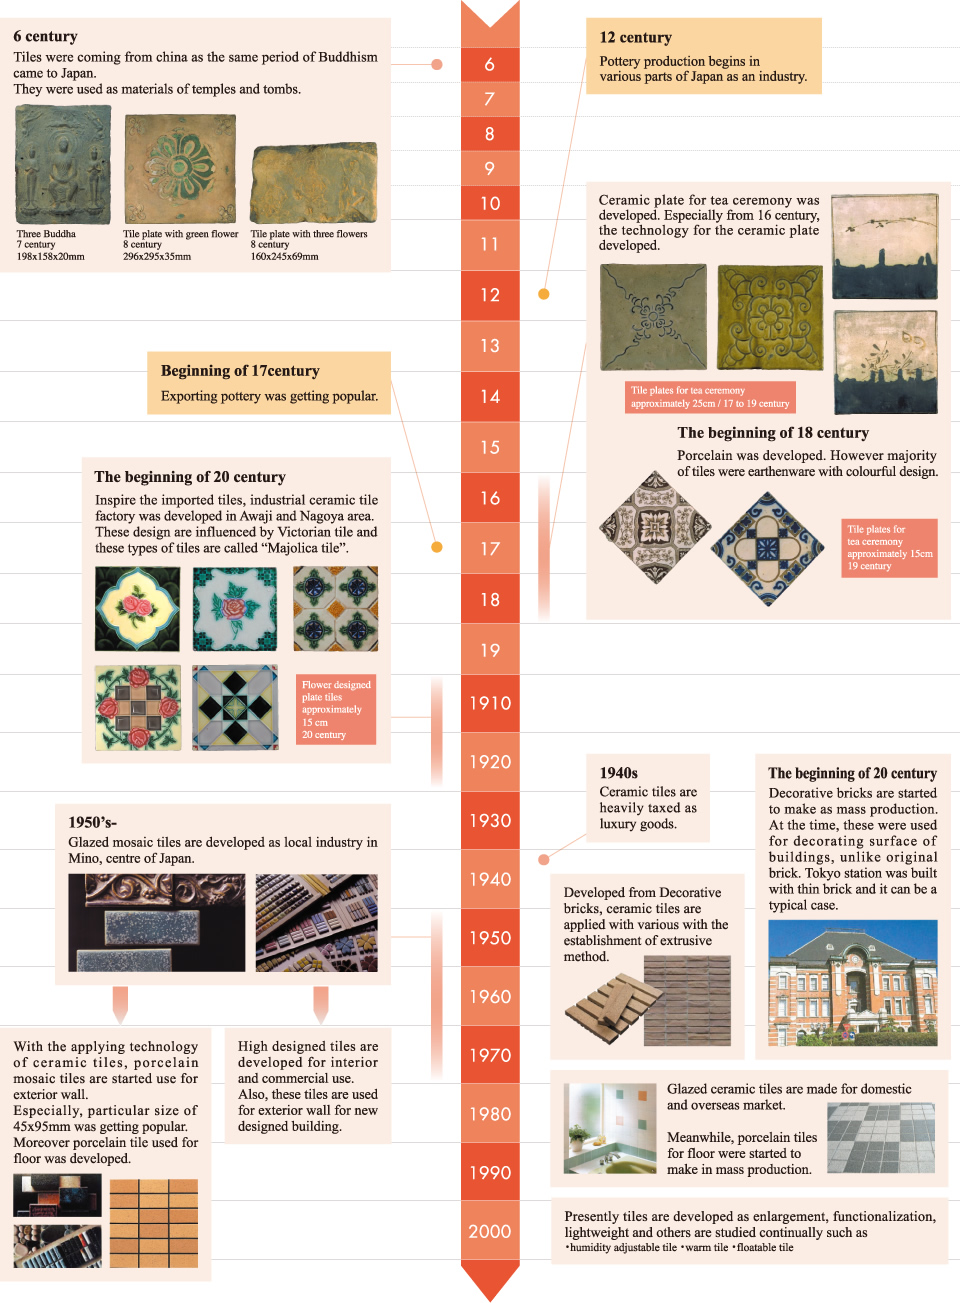 Image:history of tile